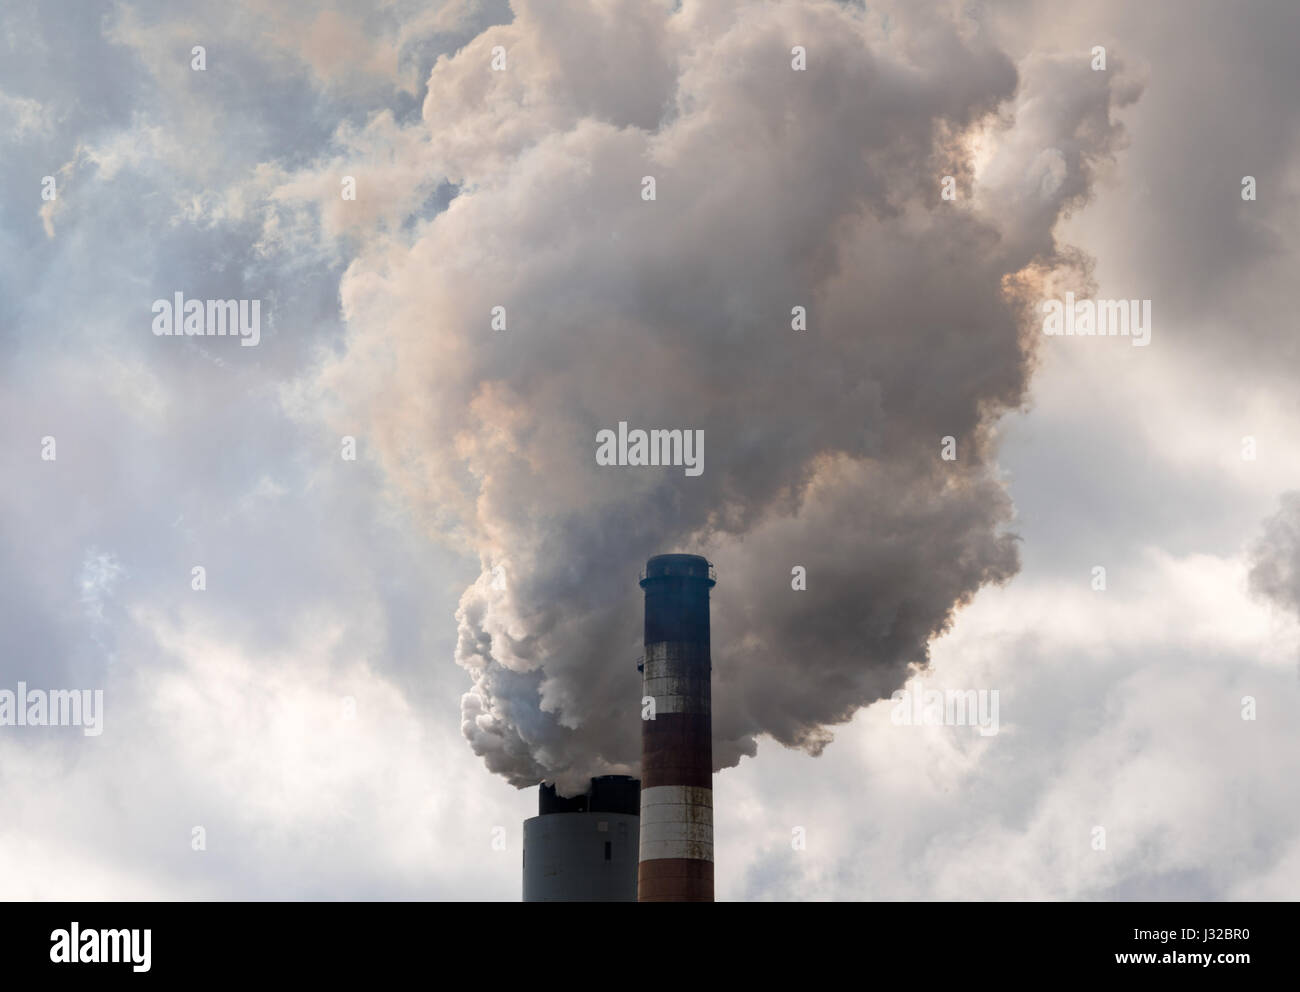 Smoke and air pollution from the chimney of an American industiral coal fired power station, USA - Stock Image